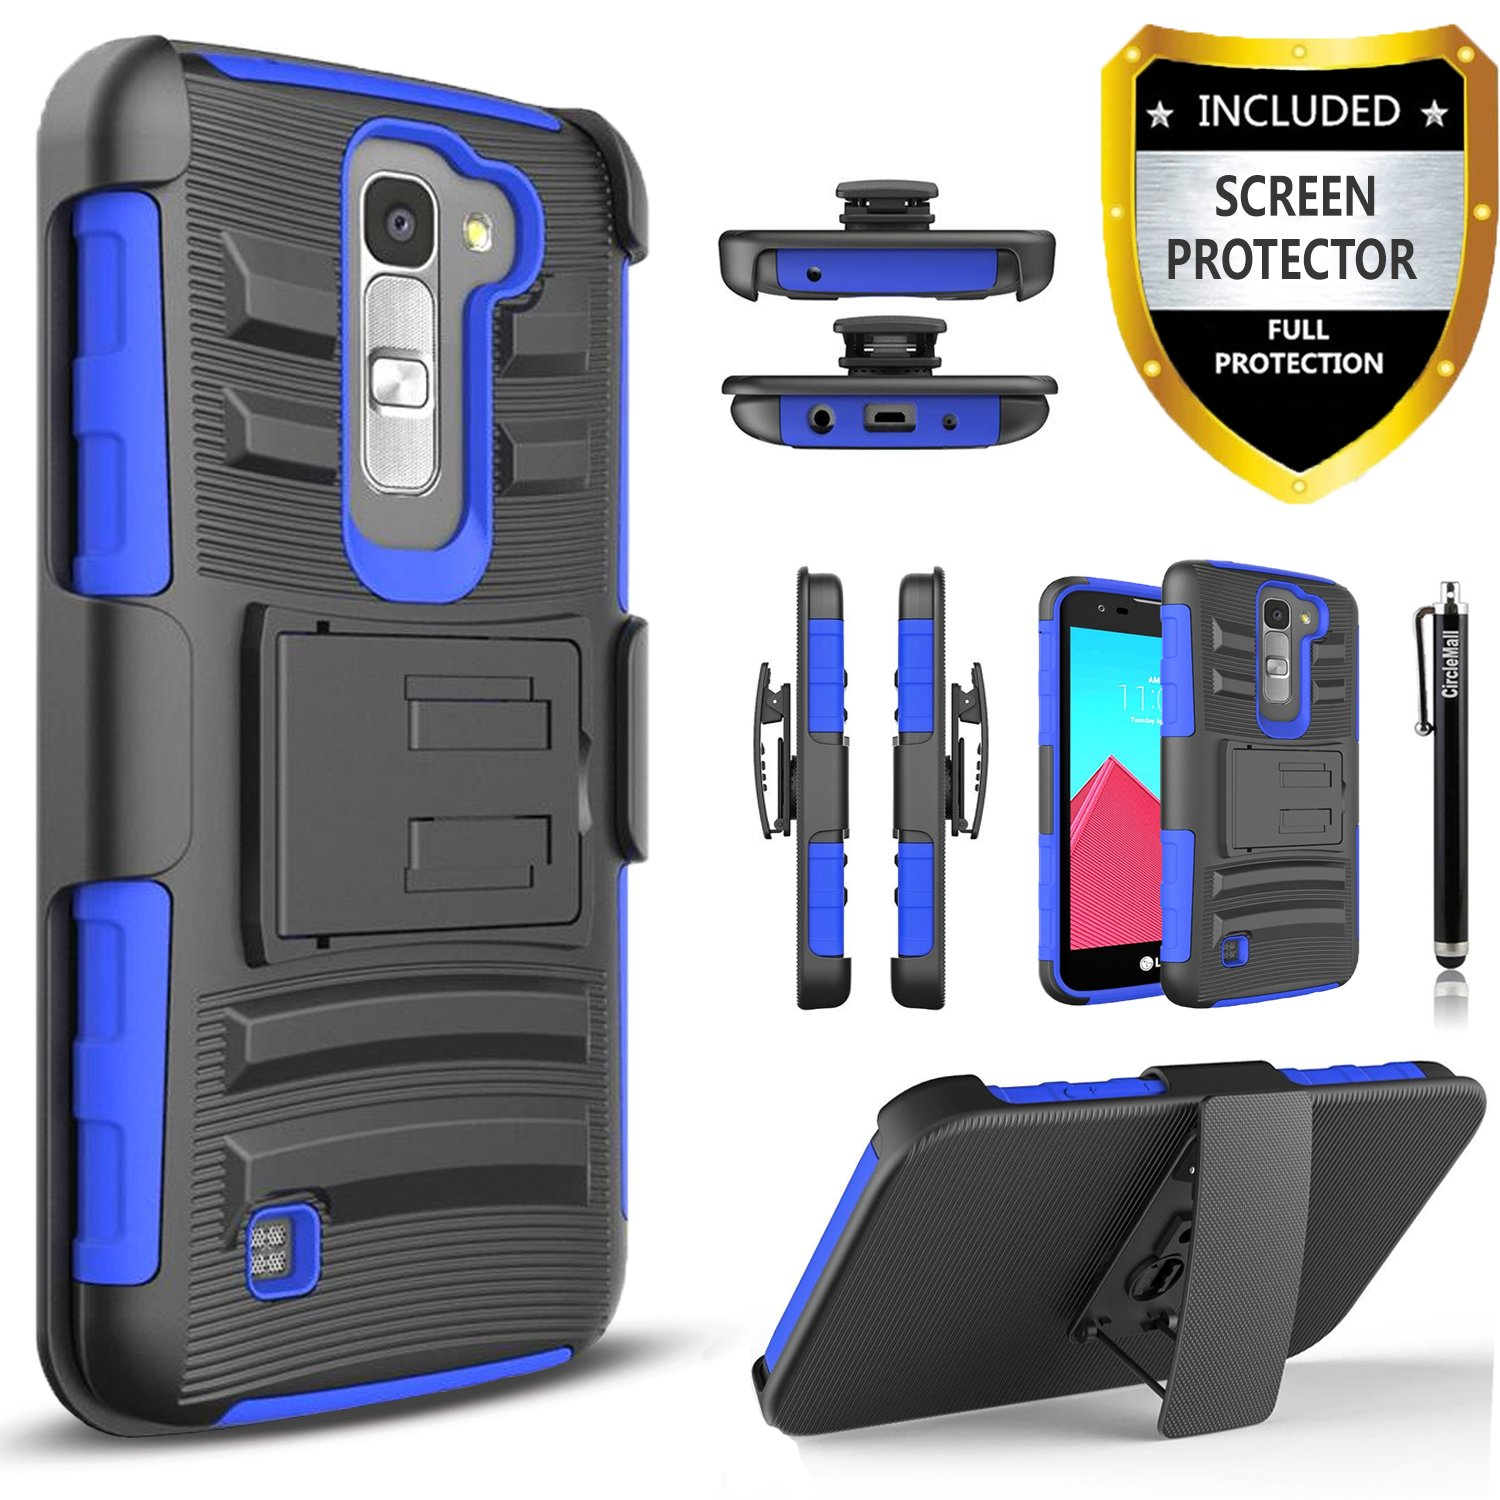 LG K7 Case, LG Treasure LTE Case, LG K8 Case, LG Tribute 5 Case, LG Escape 3 Case, LG Phoenix 2 Case, Circlemalls Combo Rugged Holster Phone Cover with [HD Screen Protector] and Stylus Pen - Blue